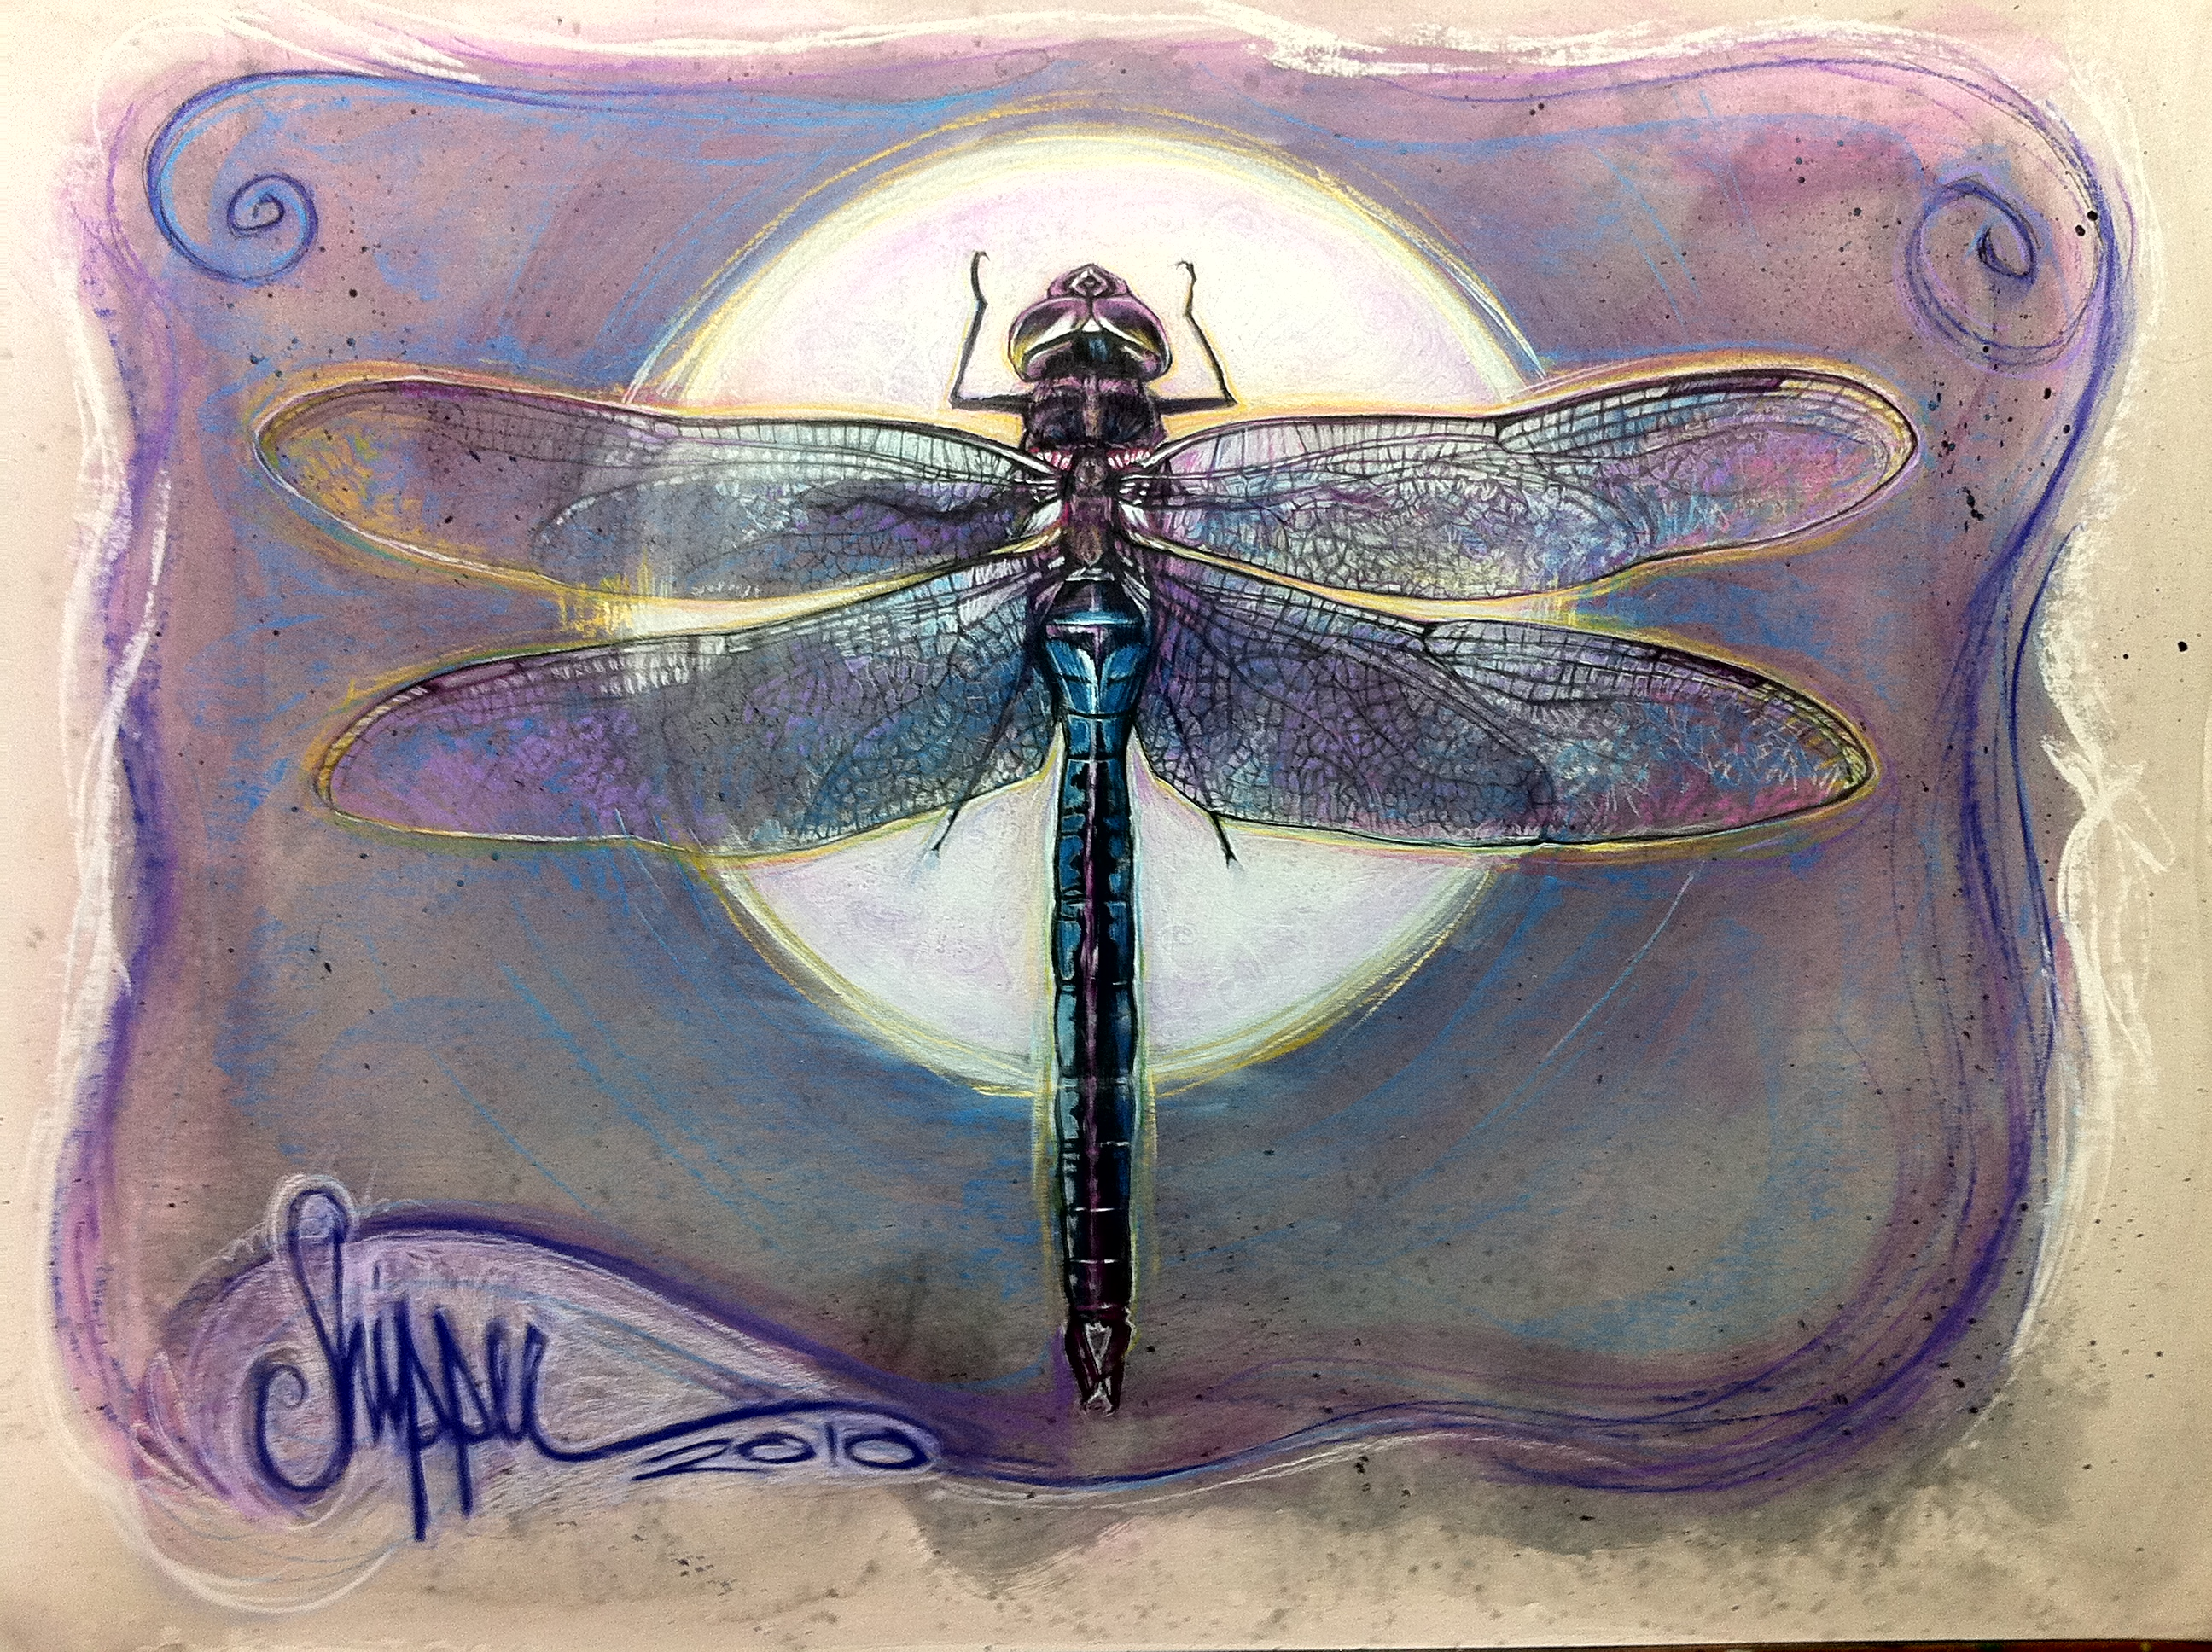 I thought i would share with you the latest painting to come out of the studio and the last before 2011. In case you haven't guessed, It is a dragonfly. And it was painted for a very special person...who likes dragonflies...and the colour purple.